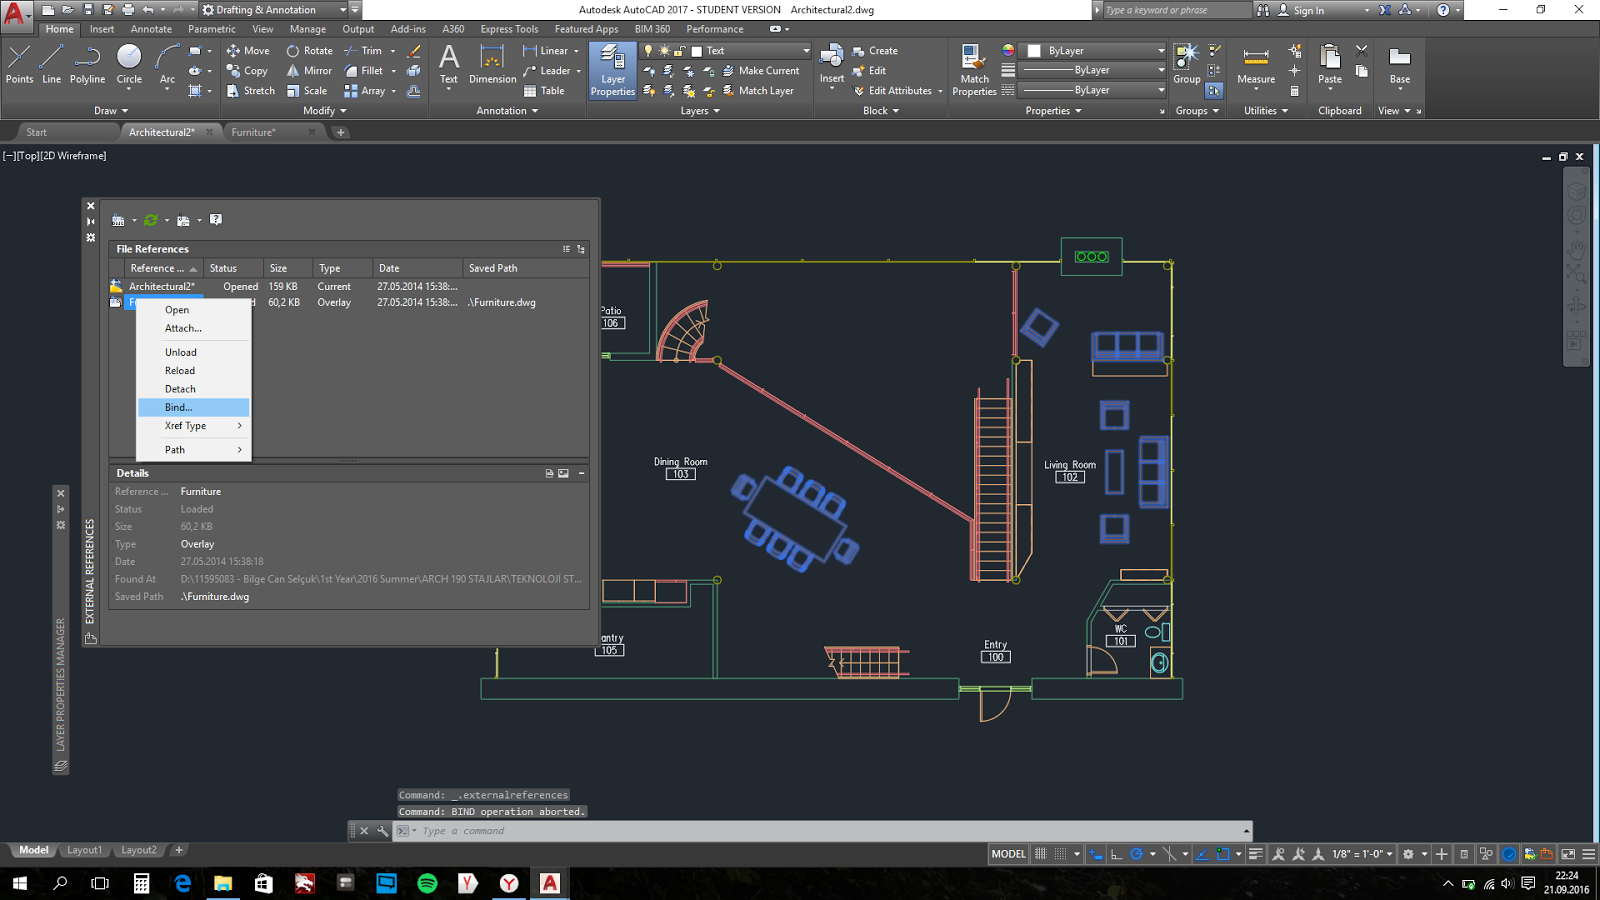 hand drafting vs autocad Cad programs, such as autocad, are designed to be technical tools with functions in industrial design, mechanical design, architecture, and even areas such as aerospace engineering and astronautics the term cad itself stands for either computer-aided design or computer-aided drafting , focused on more technical design and drafting uses.